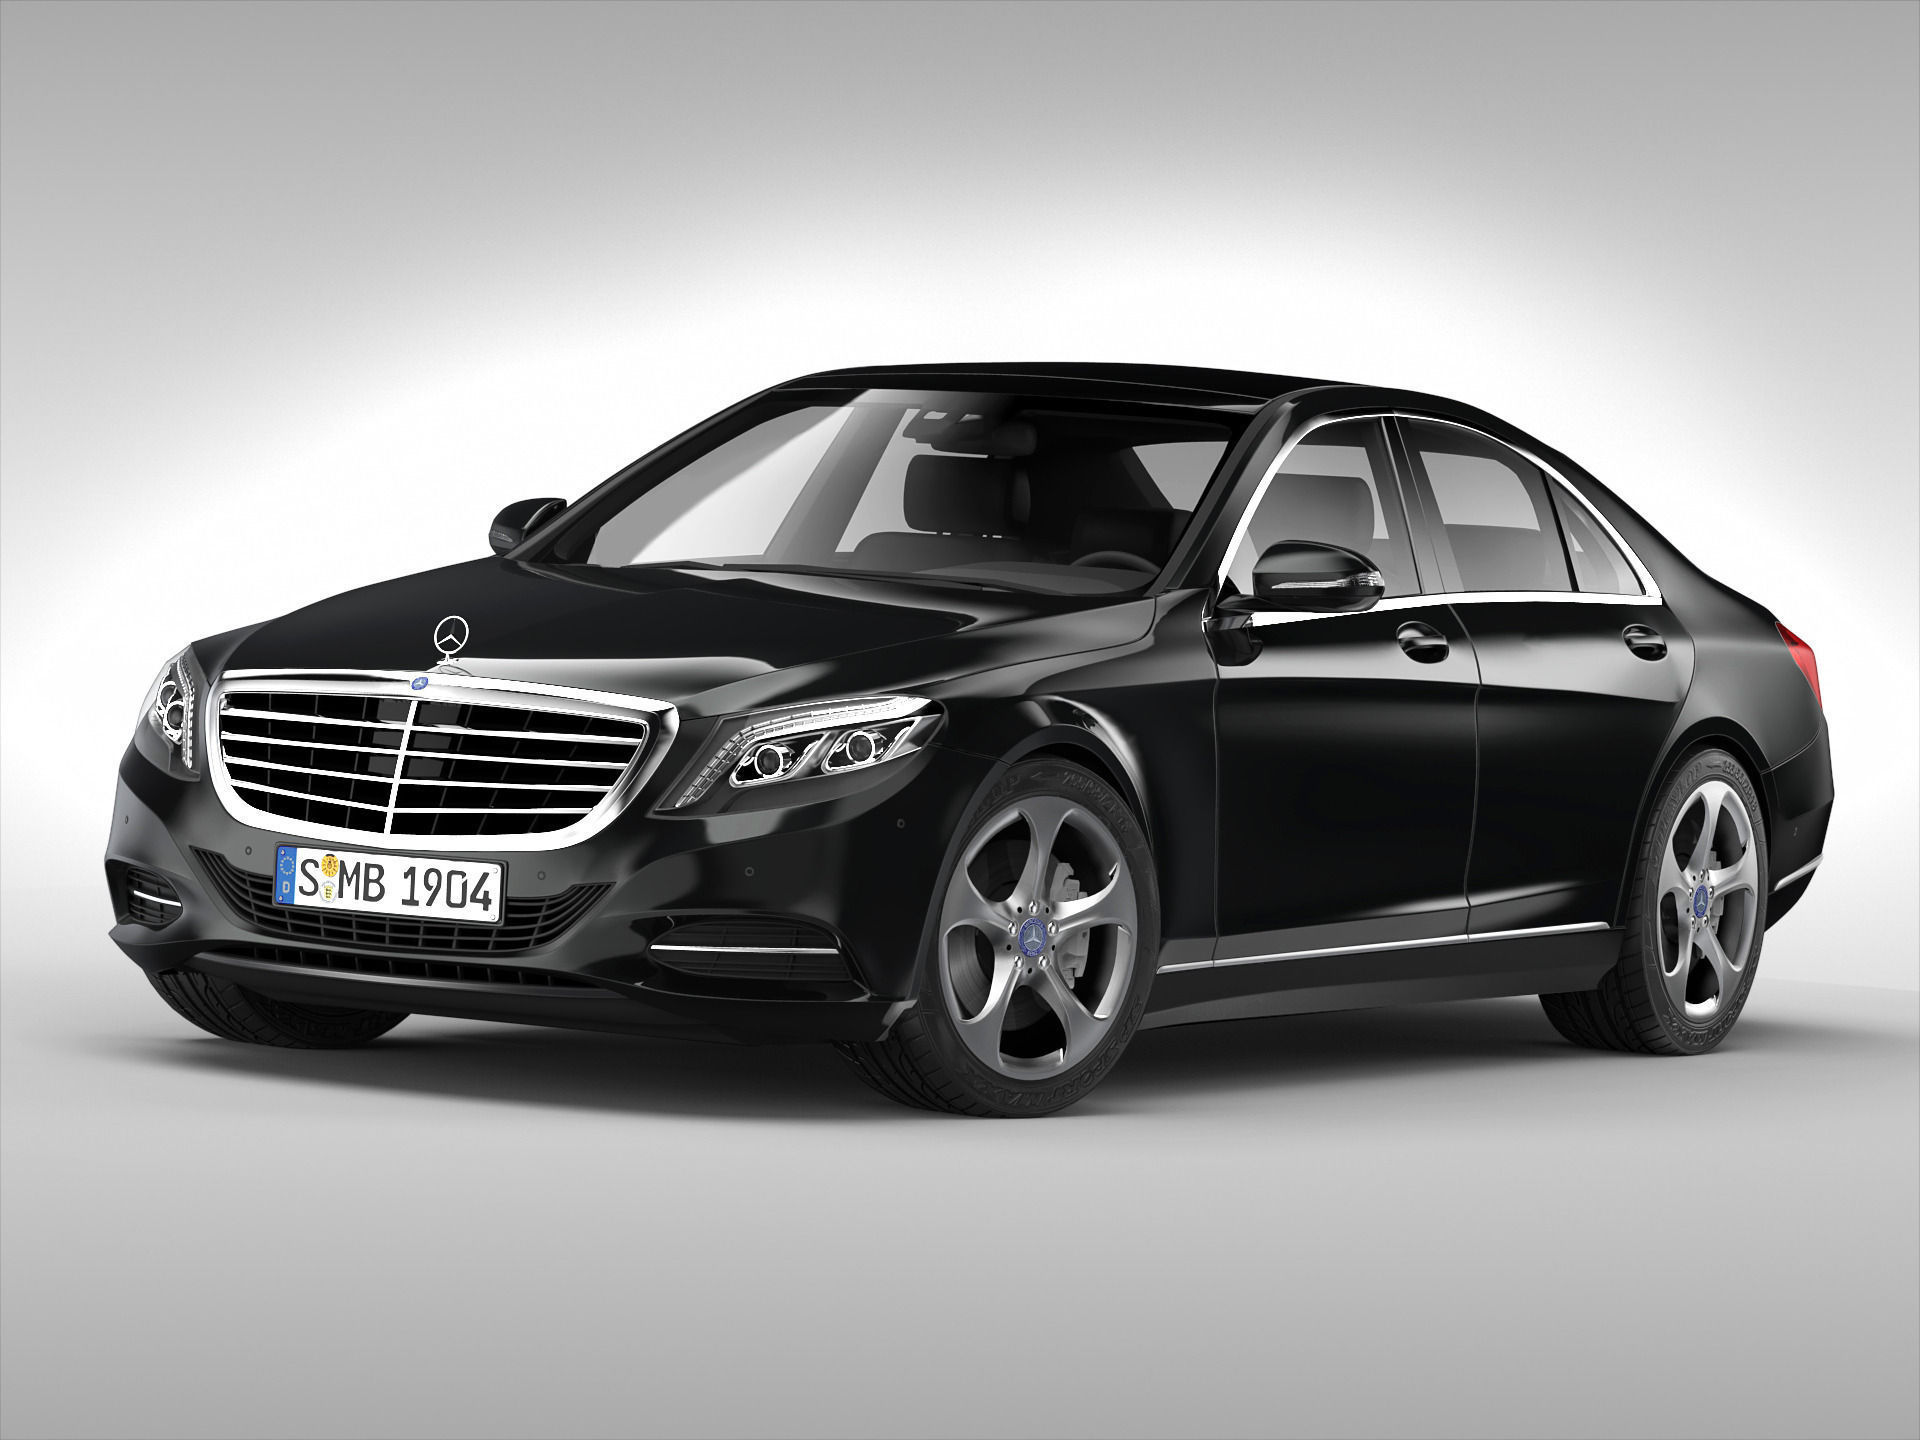 Mercedes Benz S Class 2014 3d Model Max Obj Mtl 3ds Fbx 1 ...